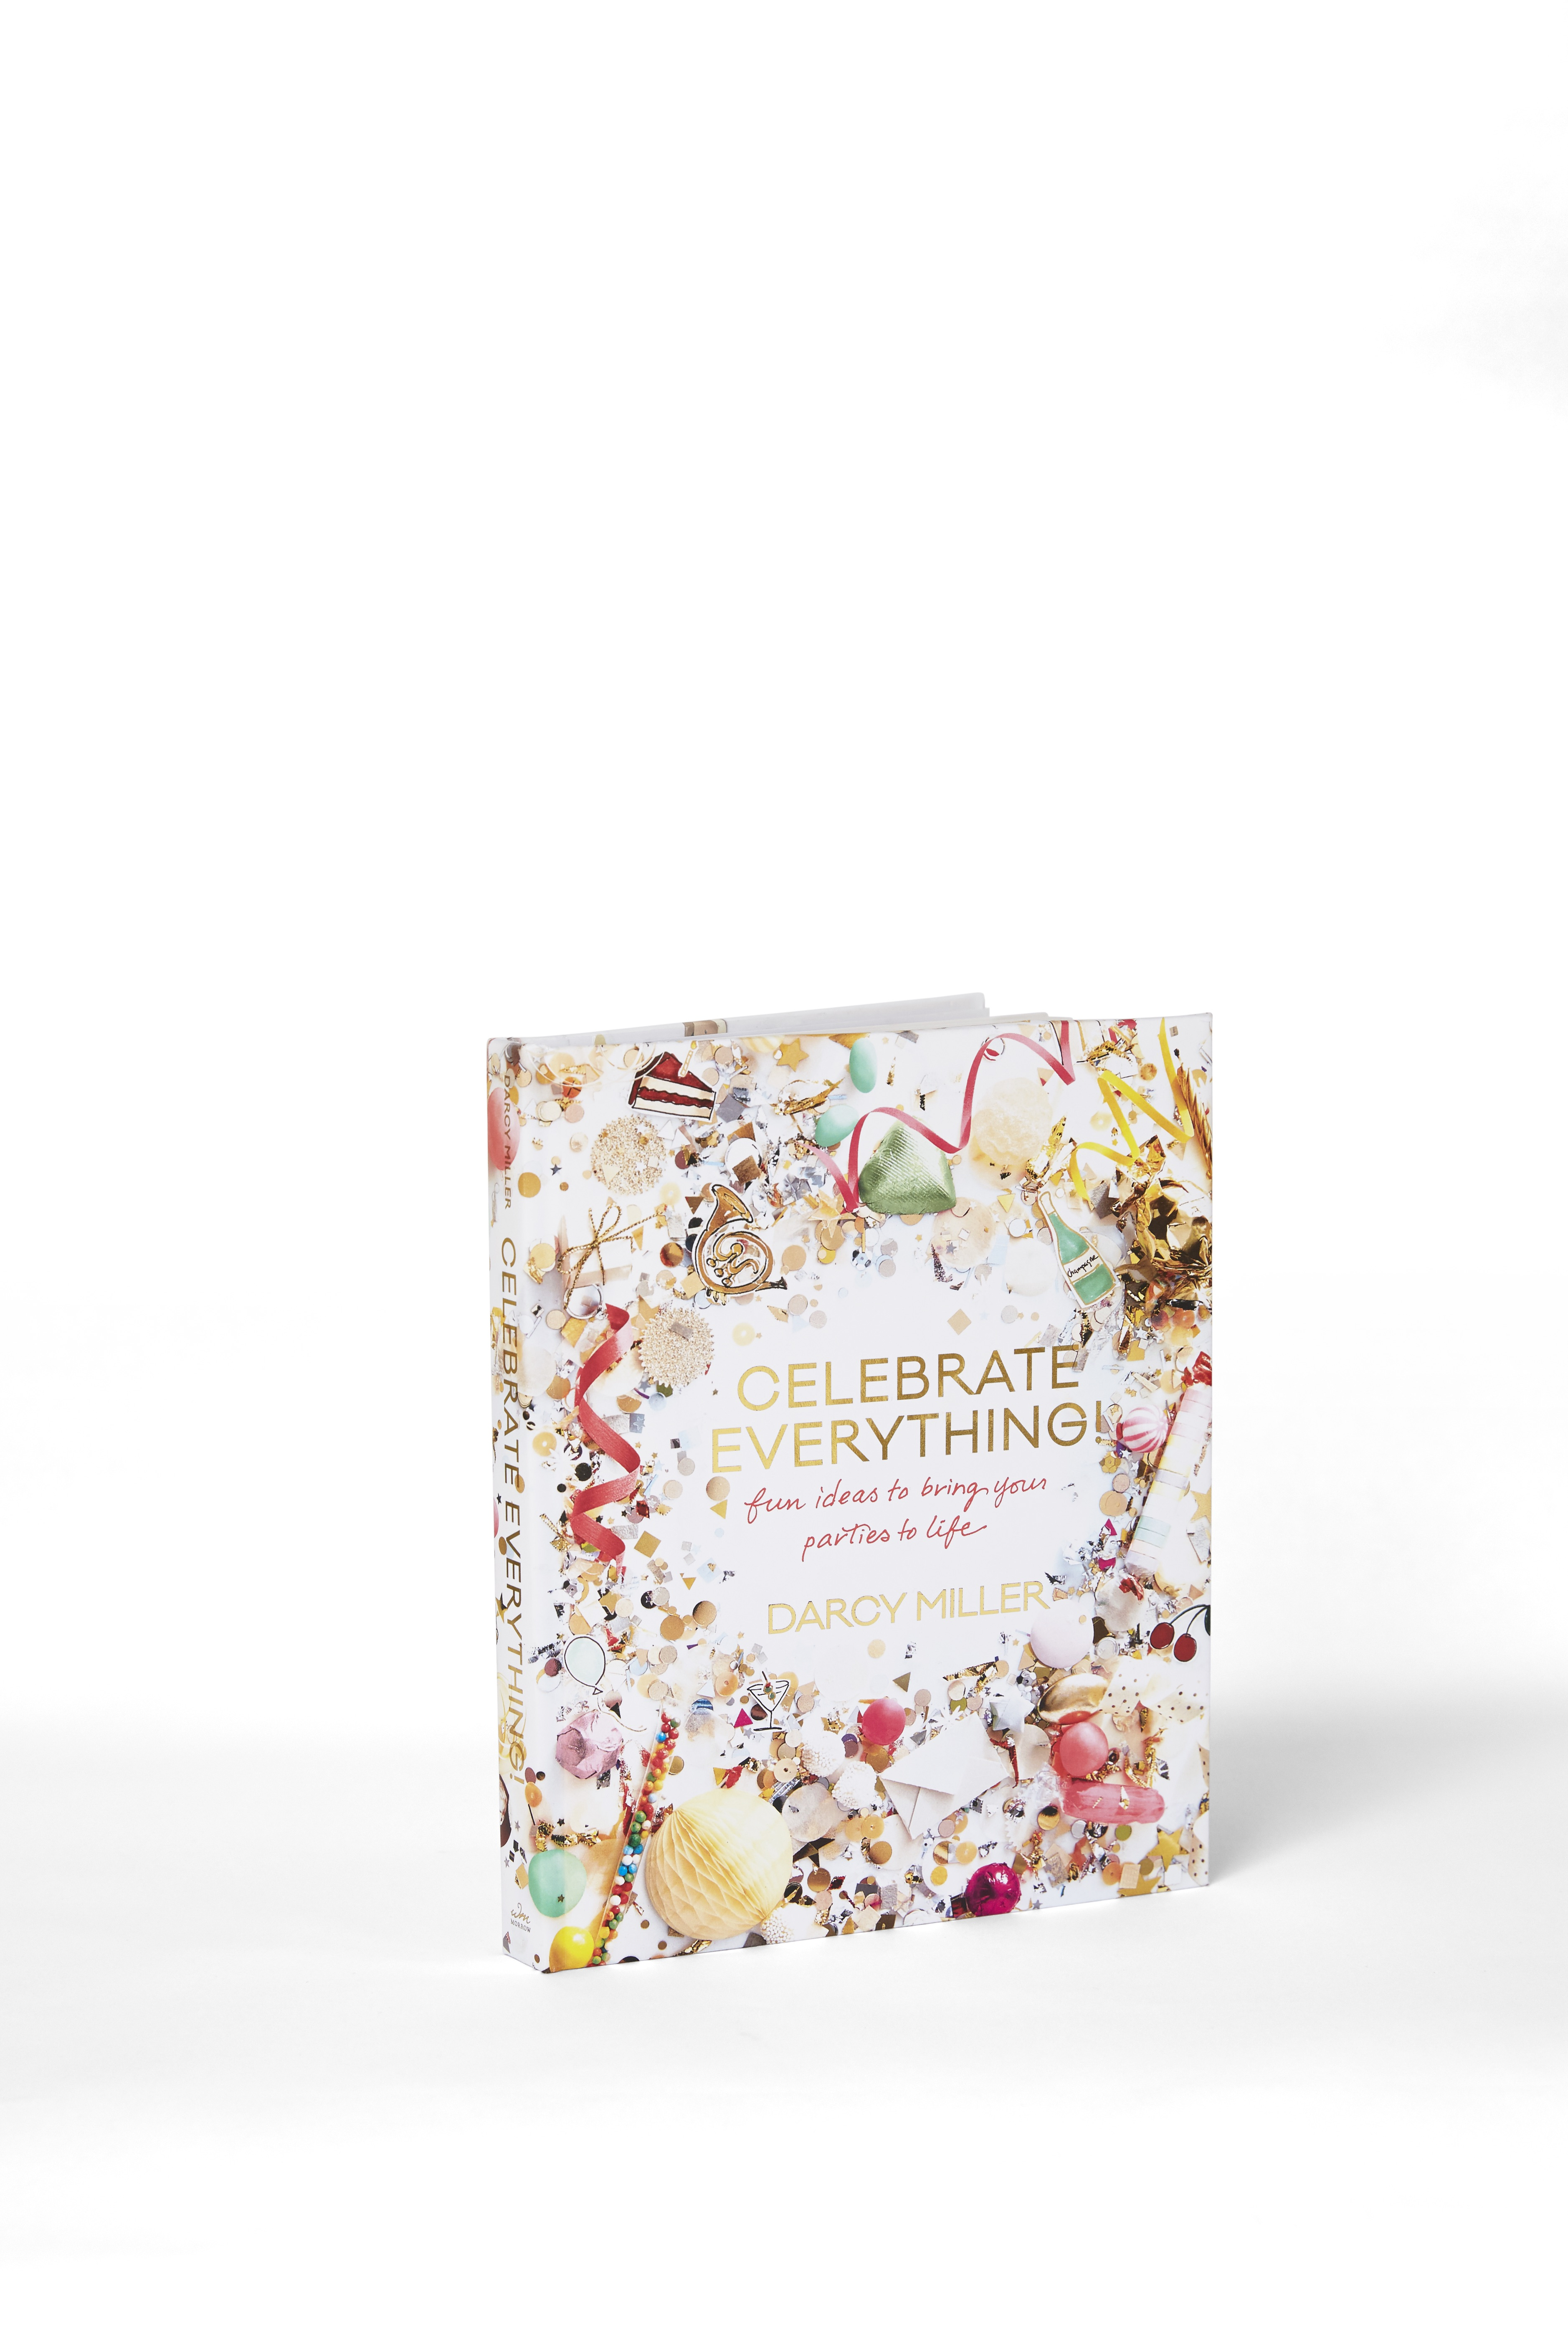 MSW Editor-at-Large Darcy Miller's New Book Will Make You Want to  Celebrate Everything!